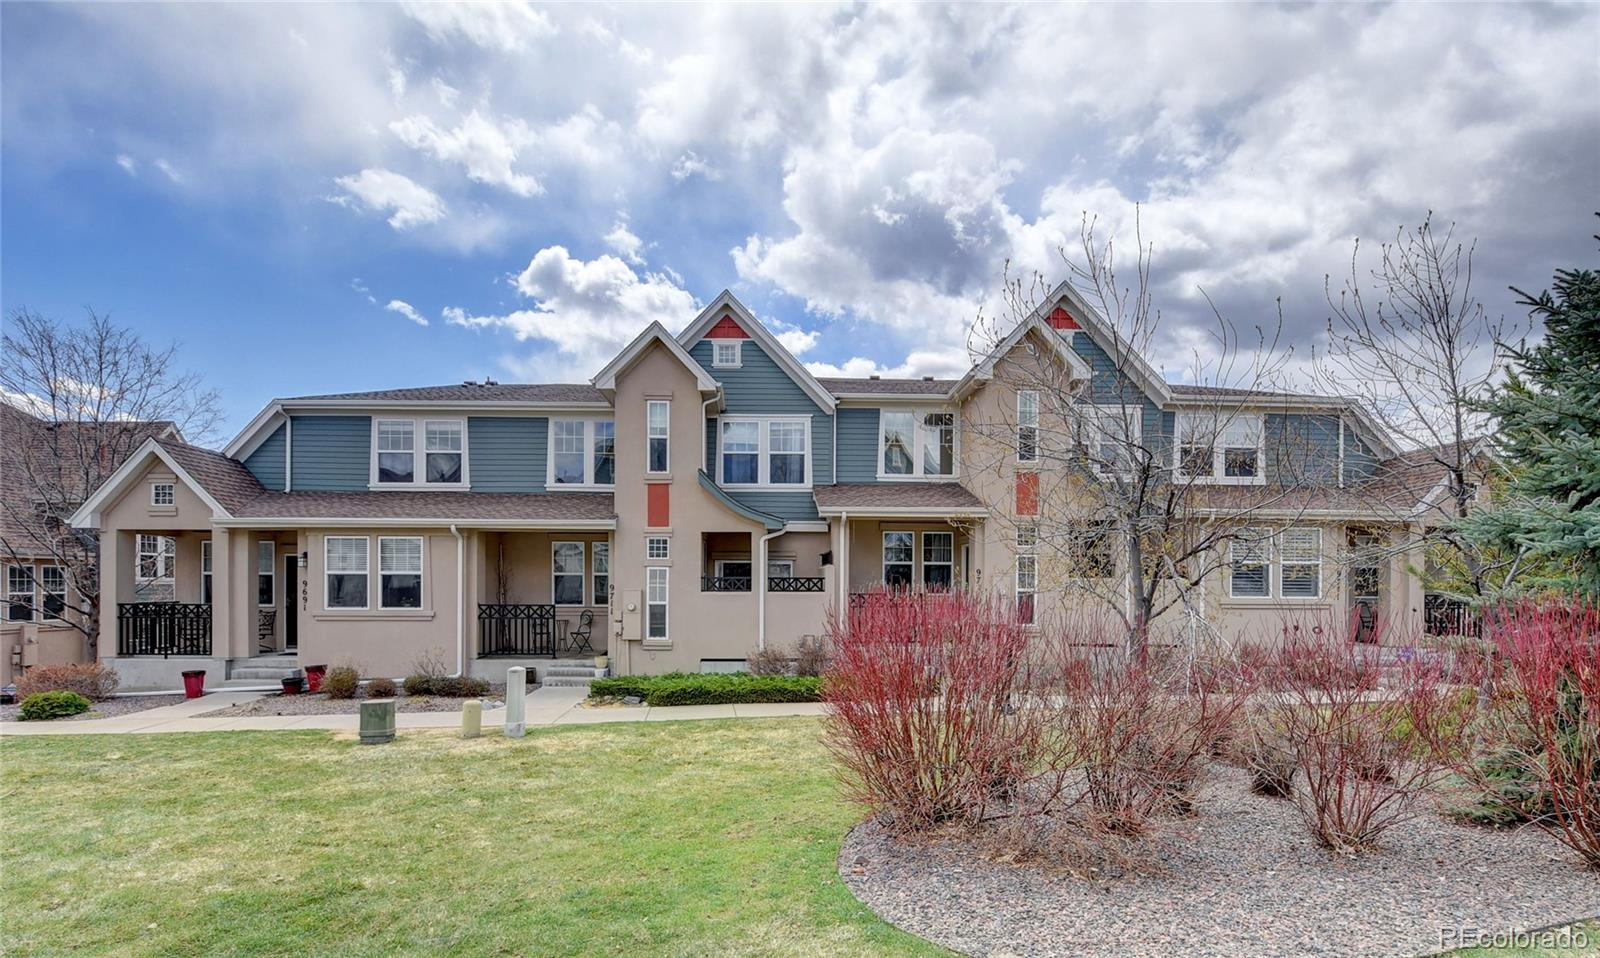 9721 W Indore Drive Property Photo - Littleton, CO real estate listing